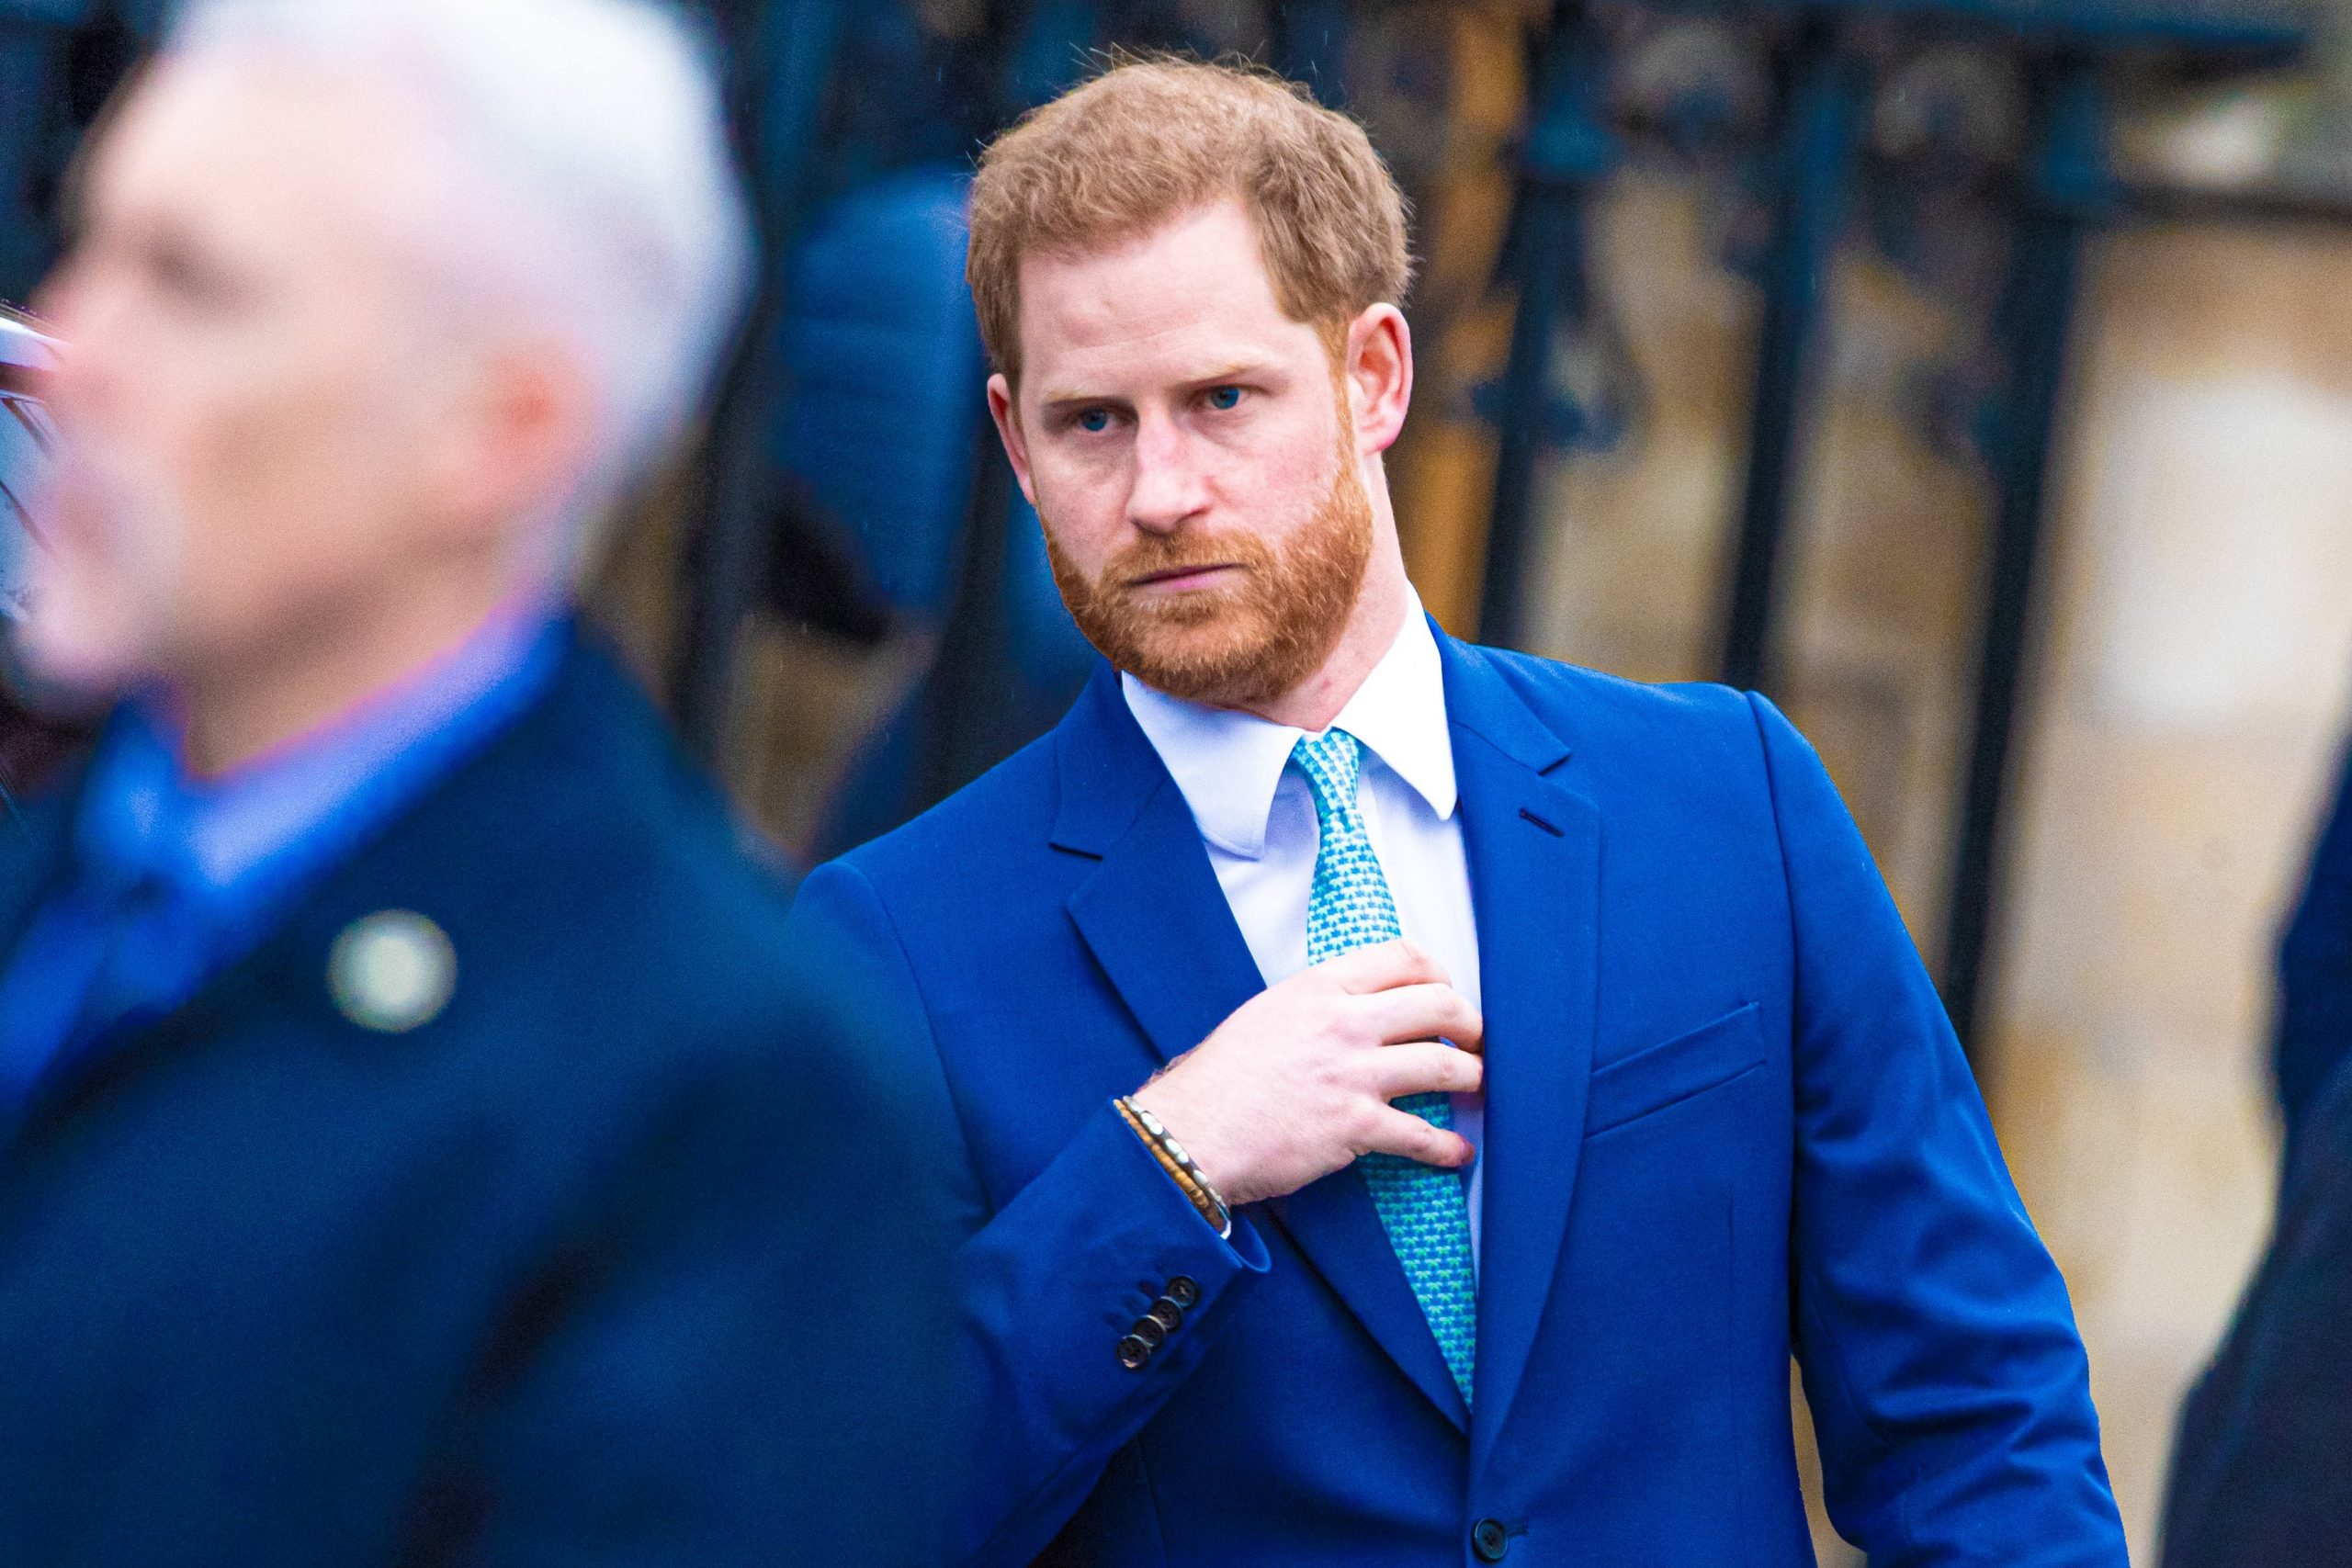 Prince Harry will be the CEO of a Silicon Valley startup